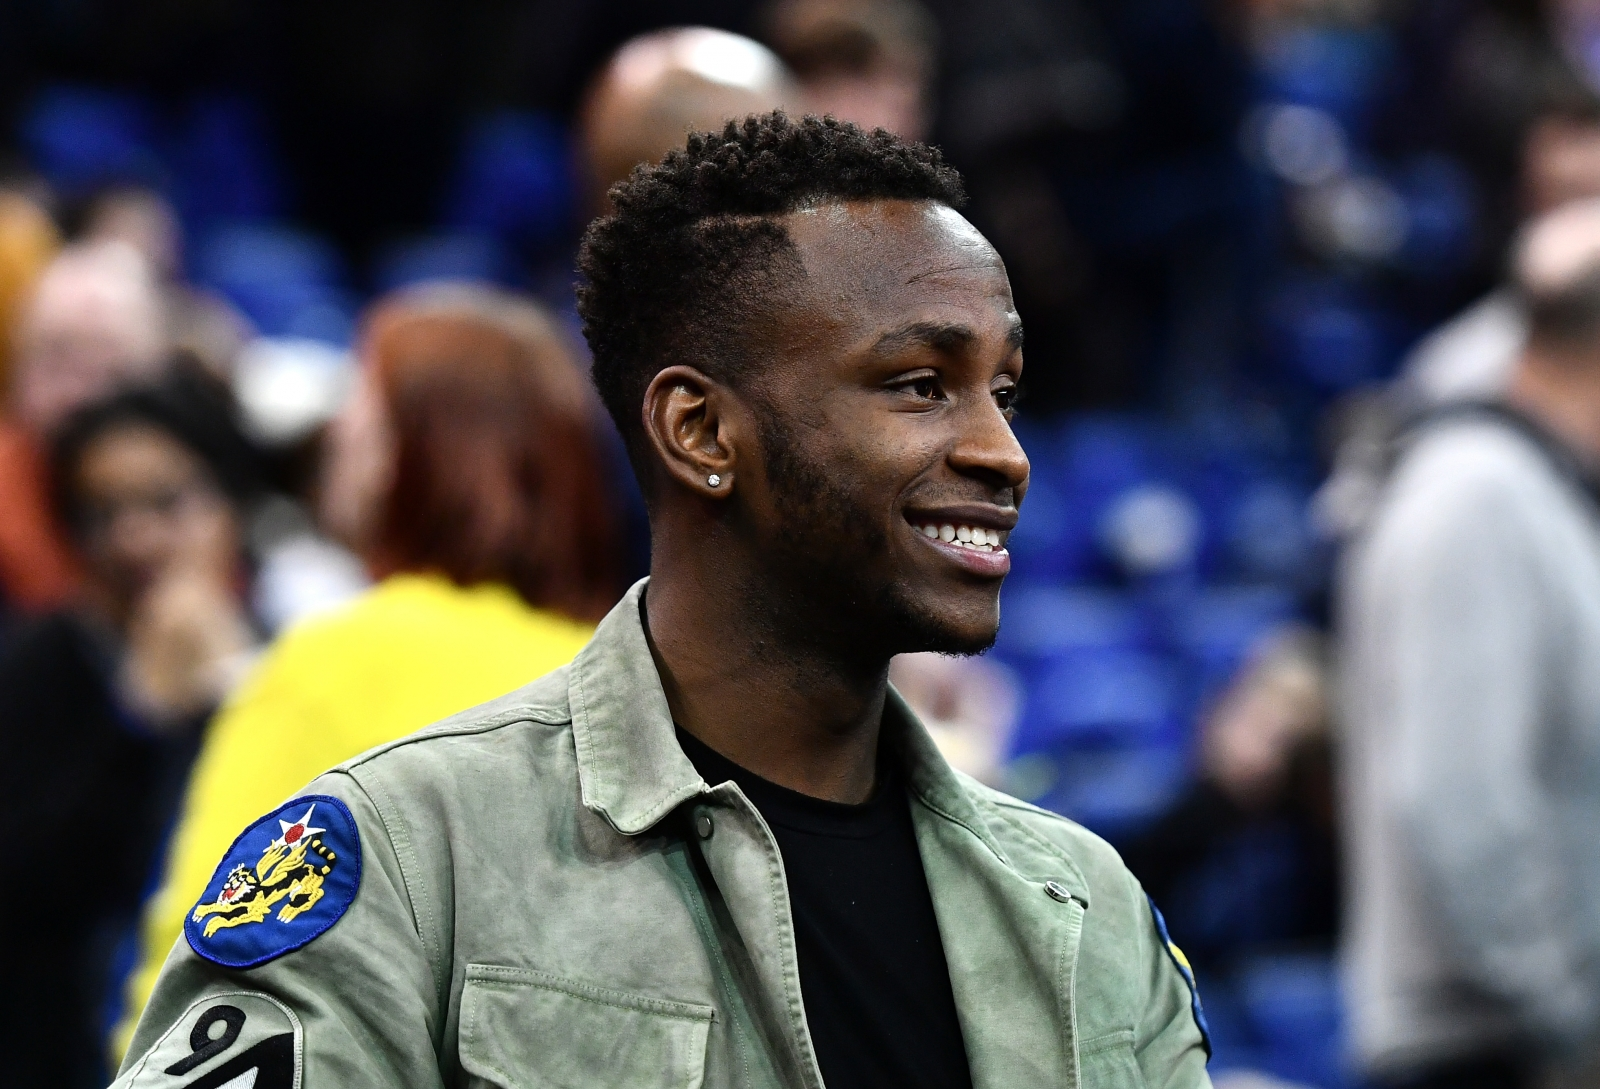 Saido Berahino